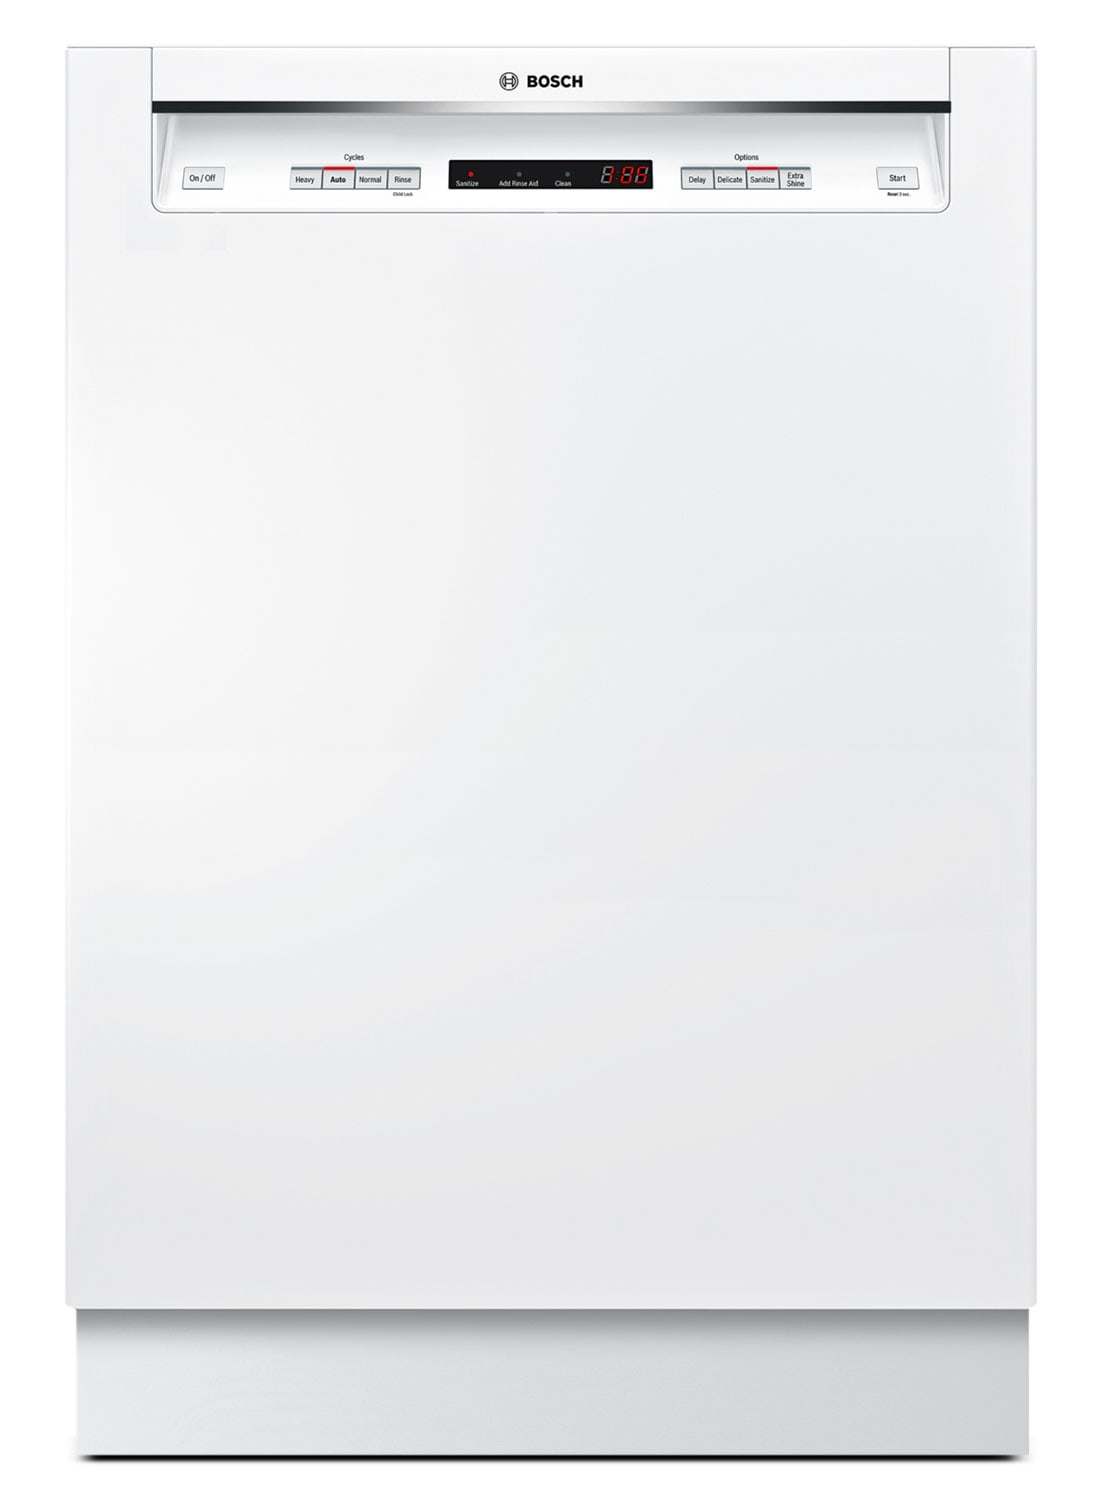 "Clean-Up - Bosch White 24"" Dishwasher - SHE53T52UC"